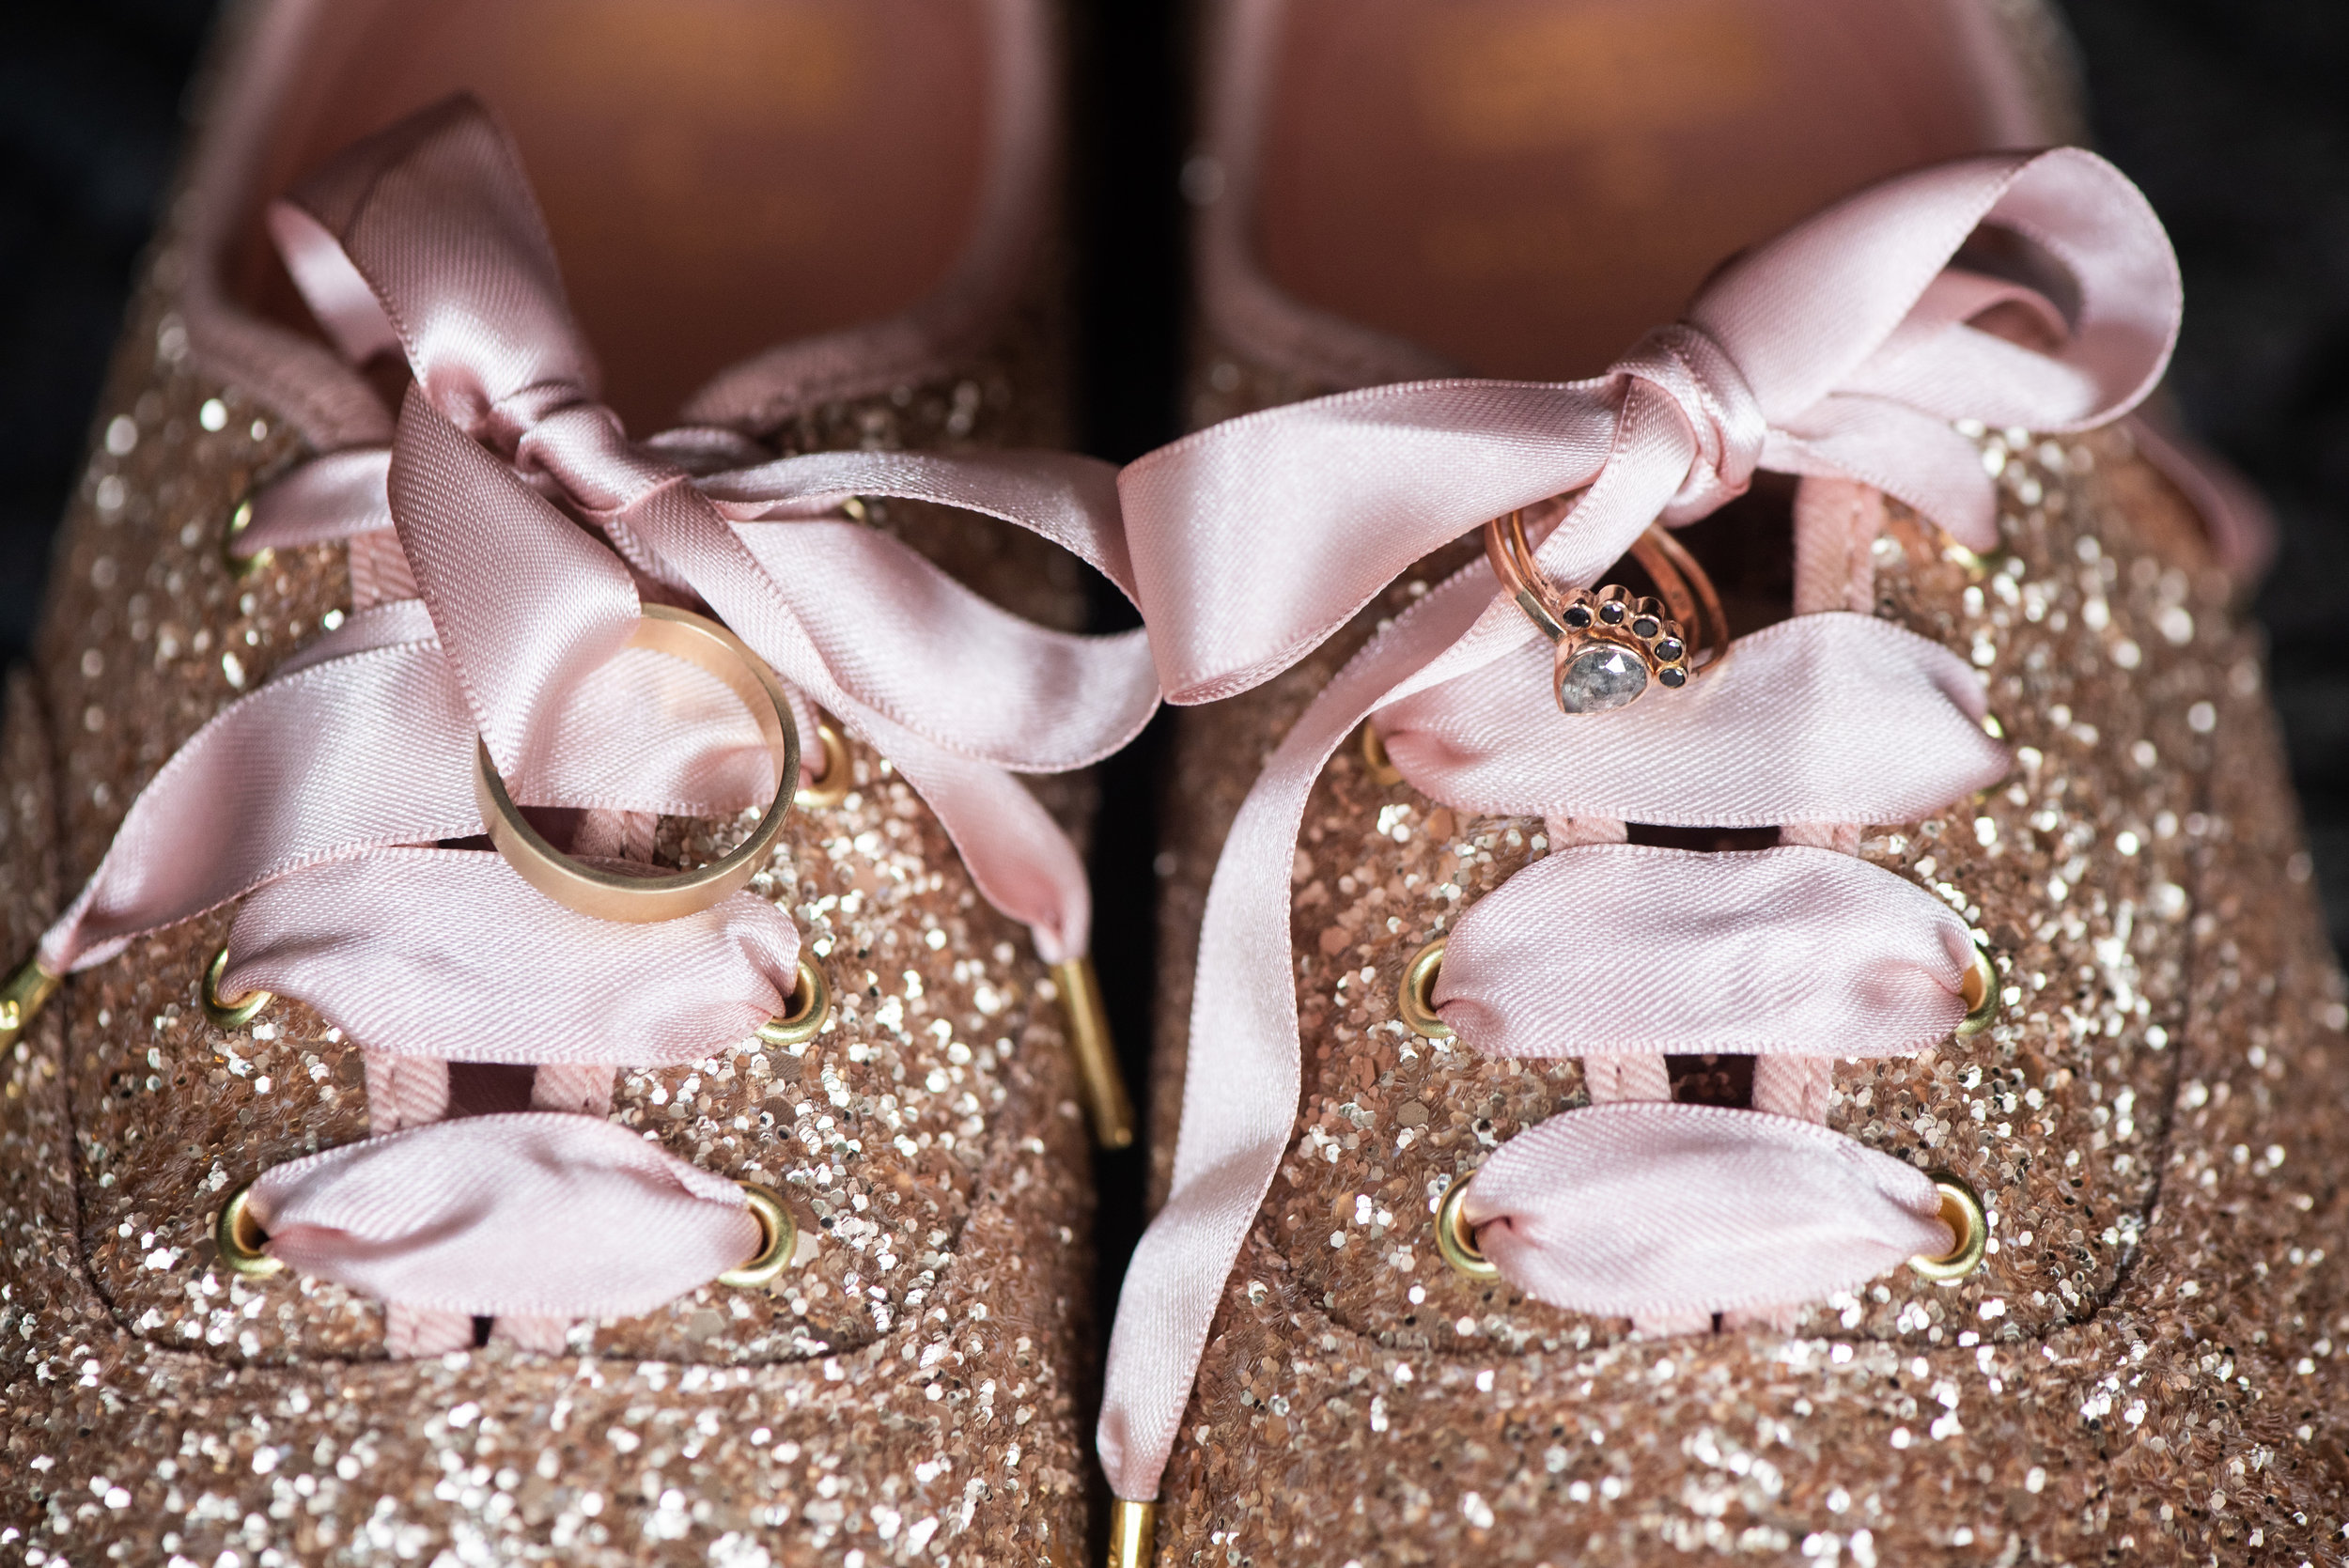 Alicia  Dave_Wedding_Details-6 alicia's sparkly ked shoes.jpg